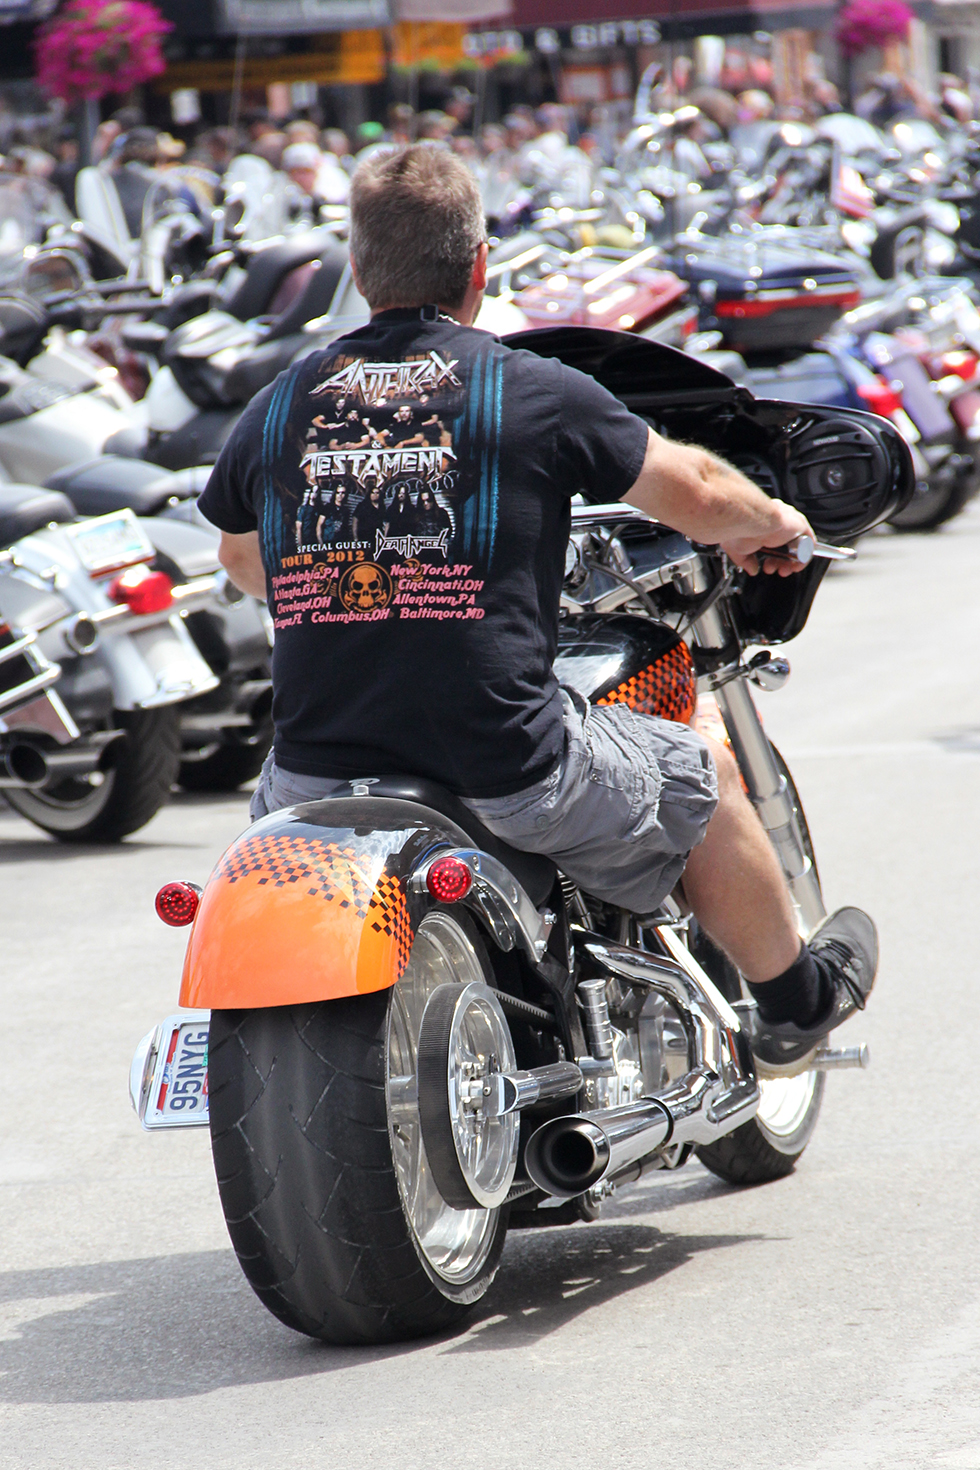 Bikers | Sturgis, South Dakota